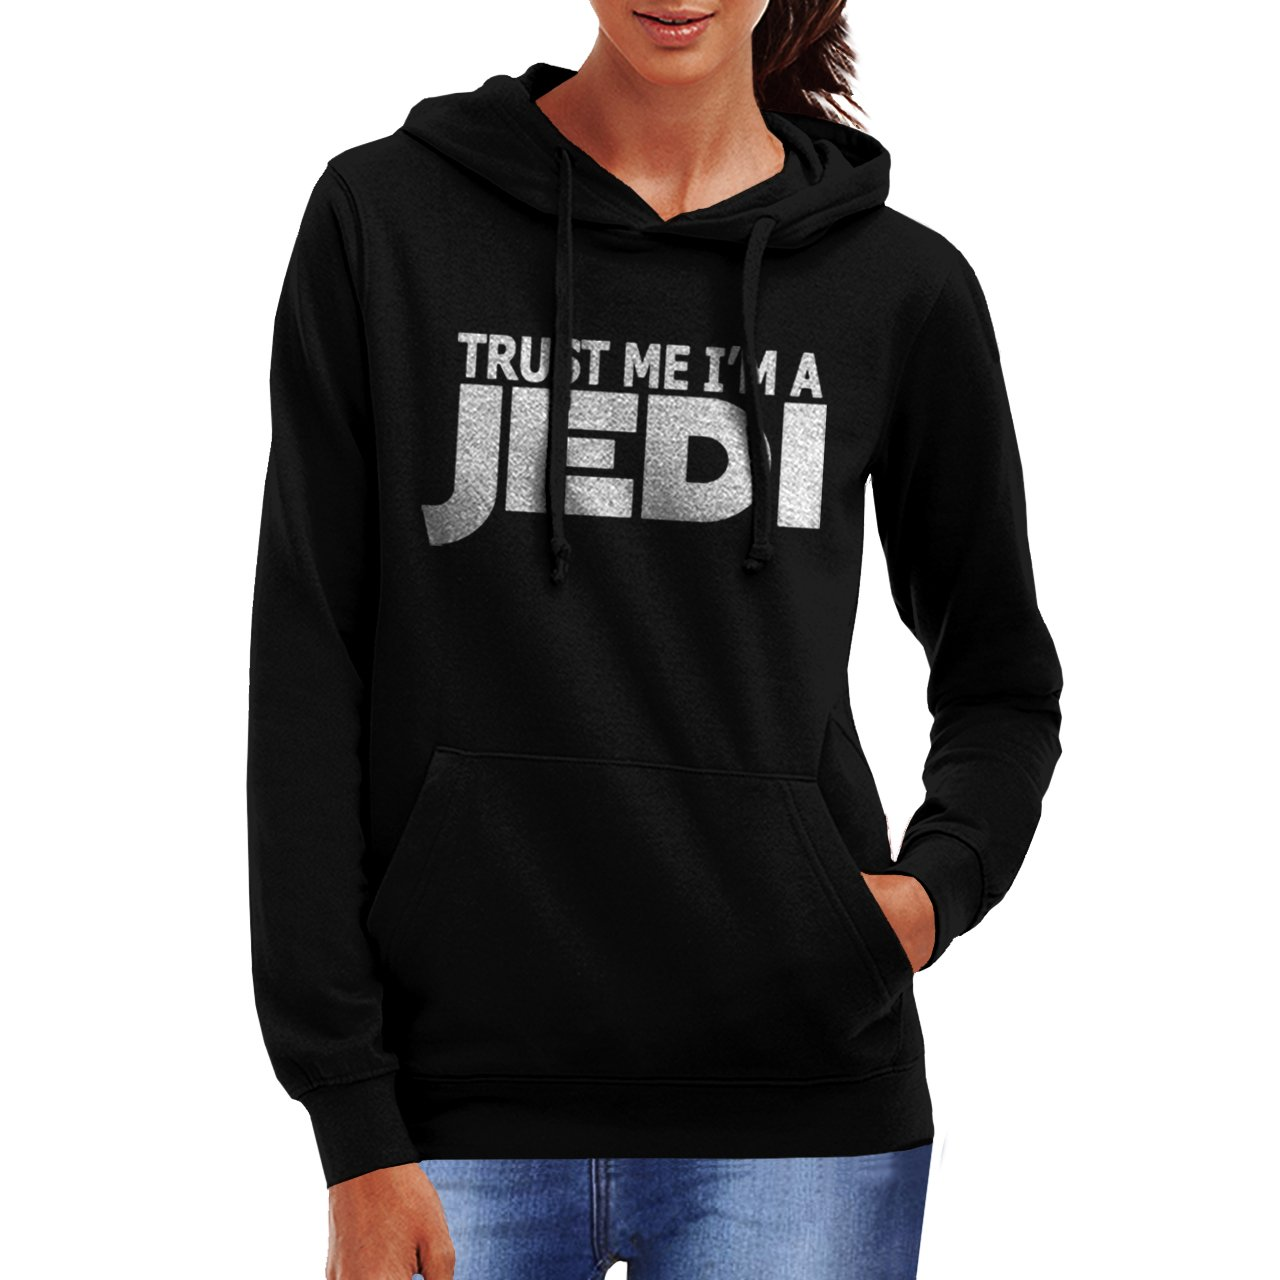 Trust Me I'm Jedi Star Wars Women Hoodie New Unique S-2XL